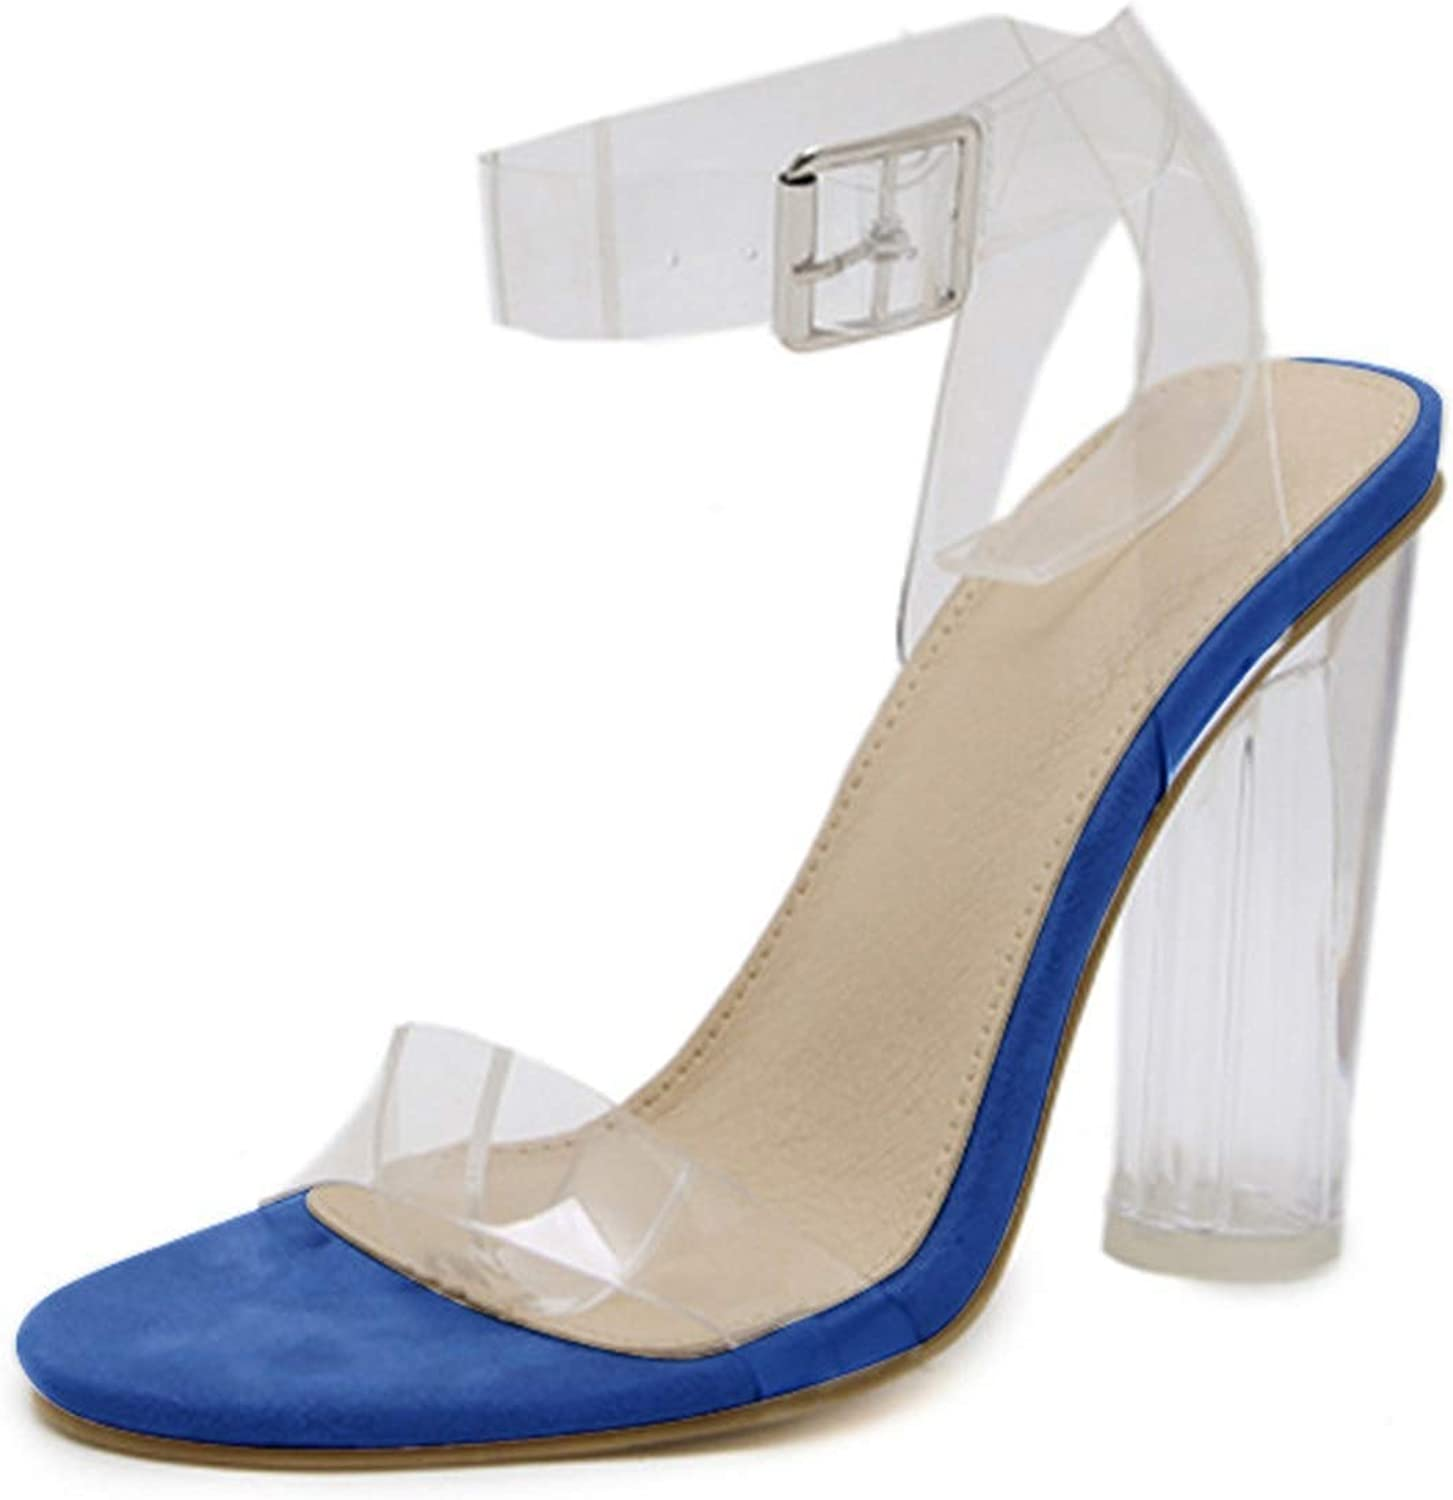 Transparent Heels Women's Summer shoes Sexy Sandals Clear Heels for Women shoes Large Size